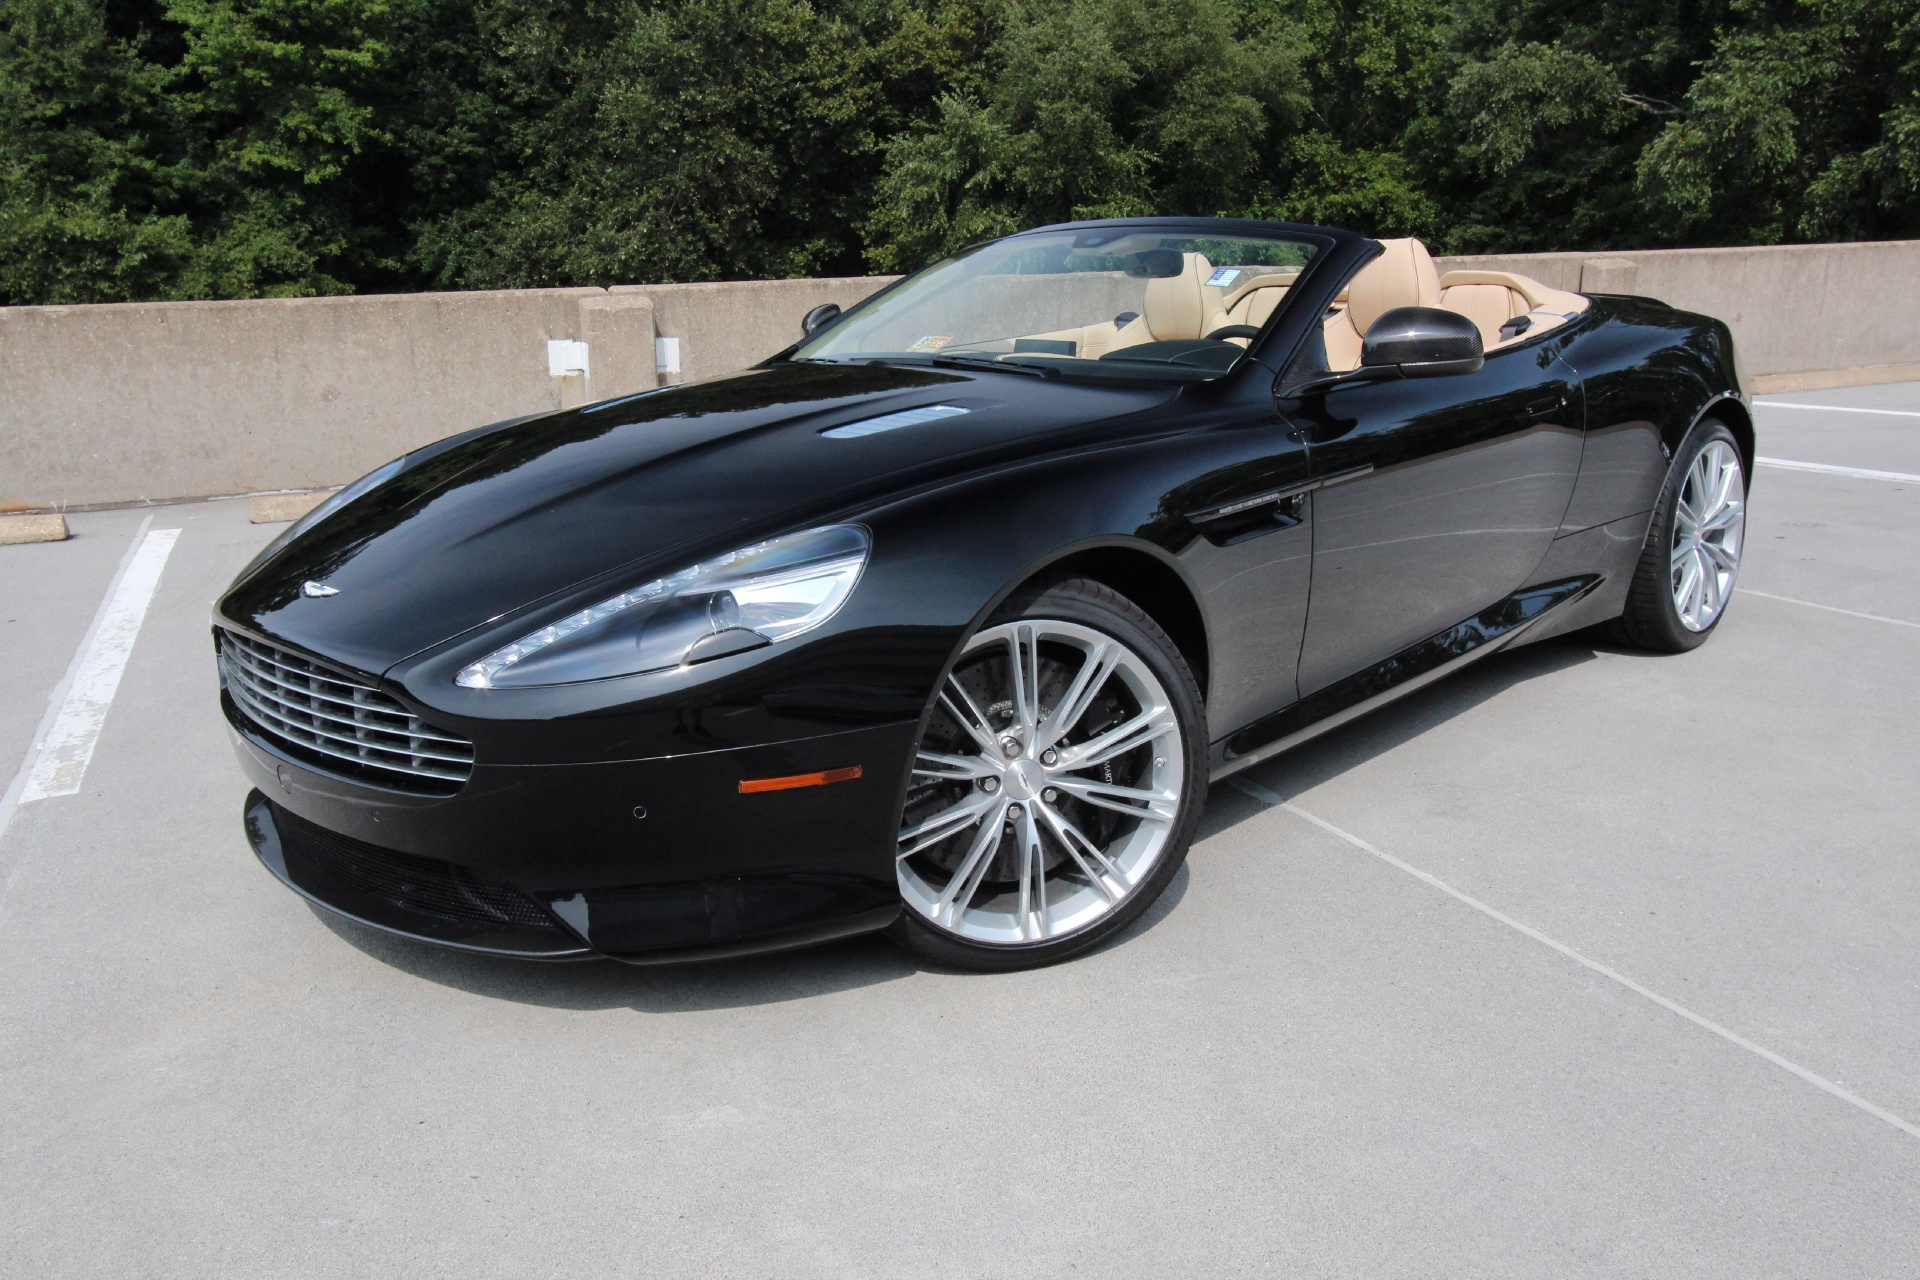 2015 aston martin db9 volante carbon edition stock 5nb16222 for sale. Black Bedroom Furniture Sets. Home Design Ideas